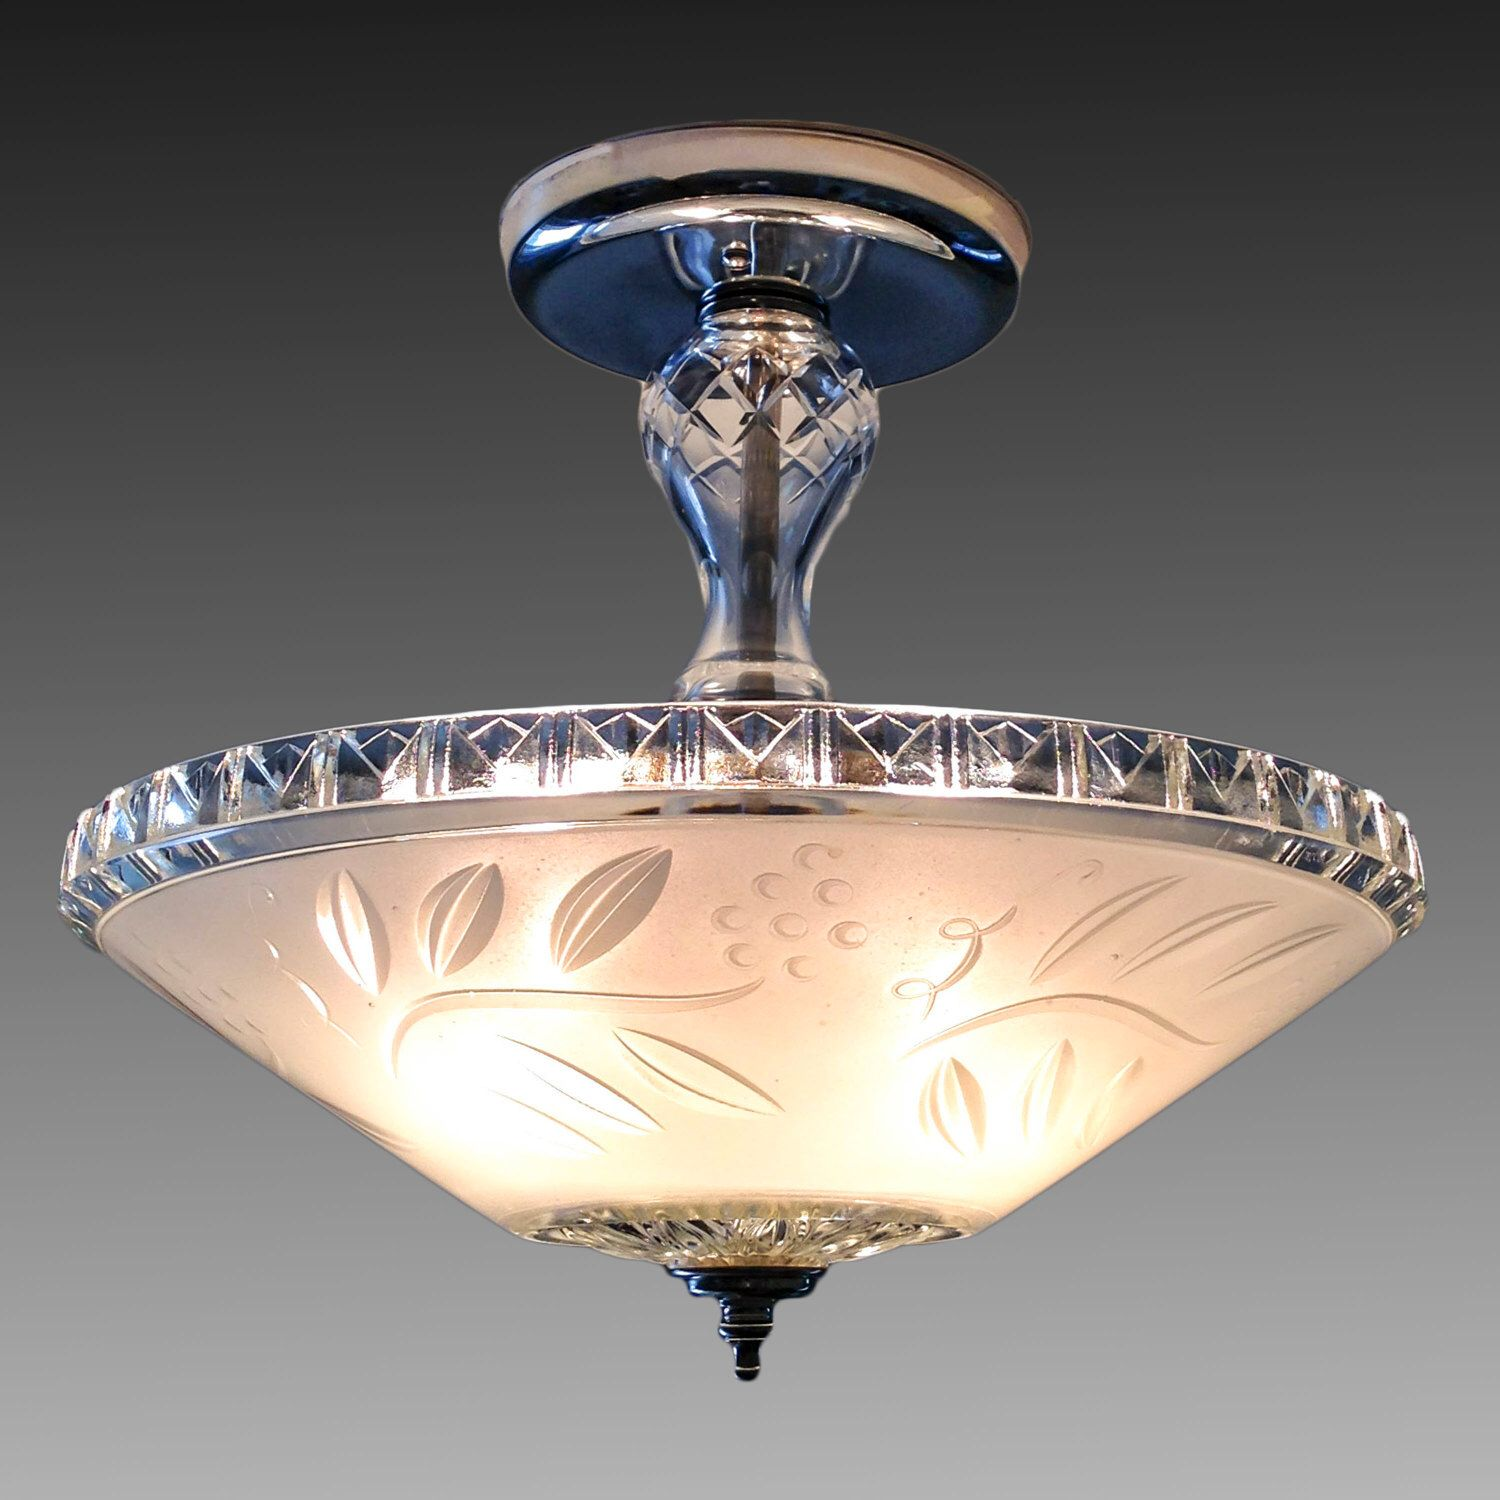 Reserved for alan frosted white 1930s 1940s glass shade frosted white 1930s 1940s glass shade vintage art deco antique chandelier ceiling light fixture nickel arubaitofo Gallery